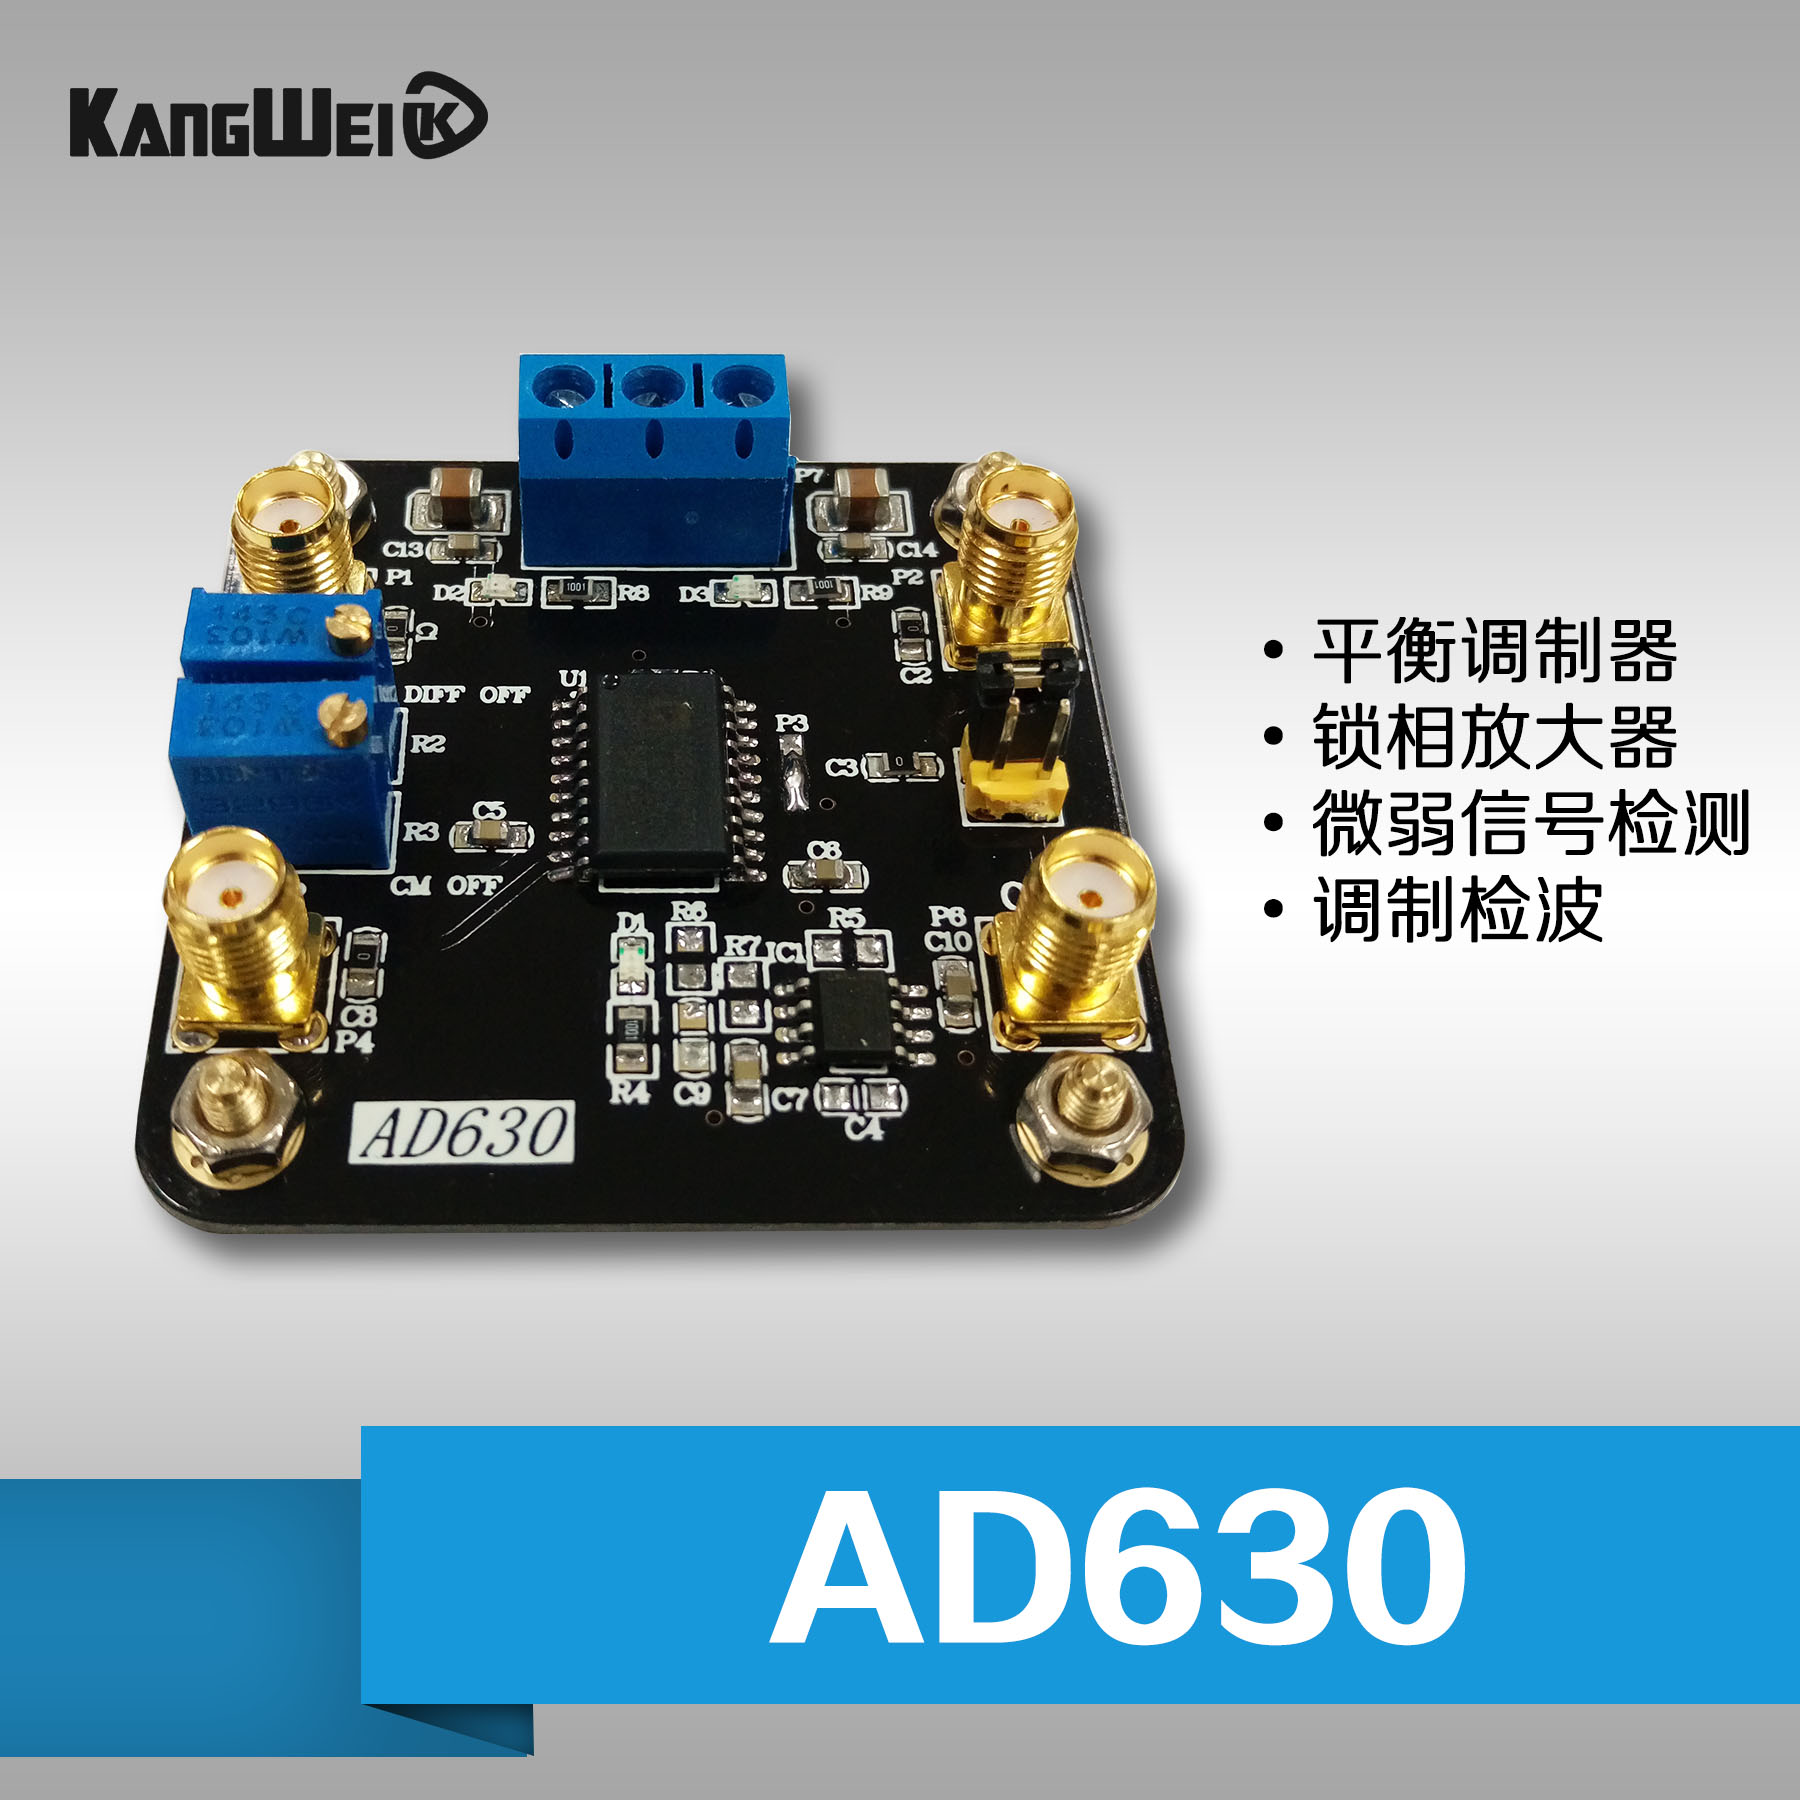 цена на Balanced modulator AD630 chip PLL amplifier module for weak signal detection modulation detection